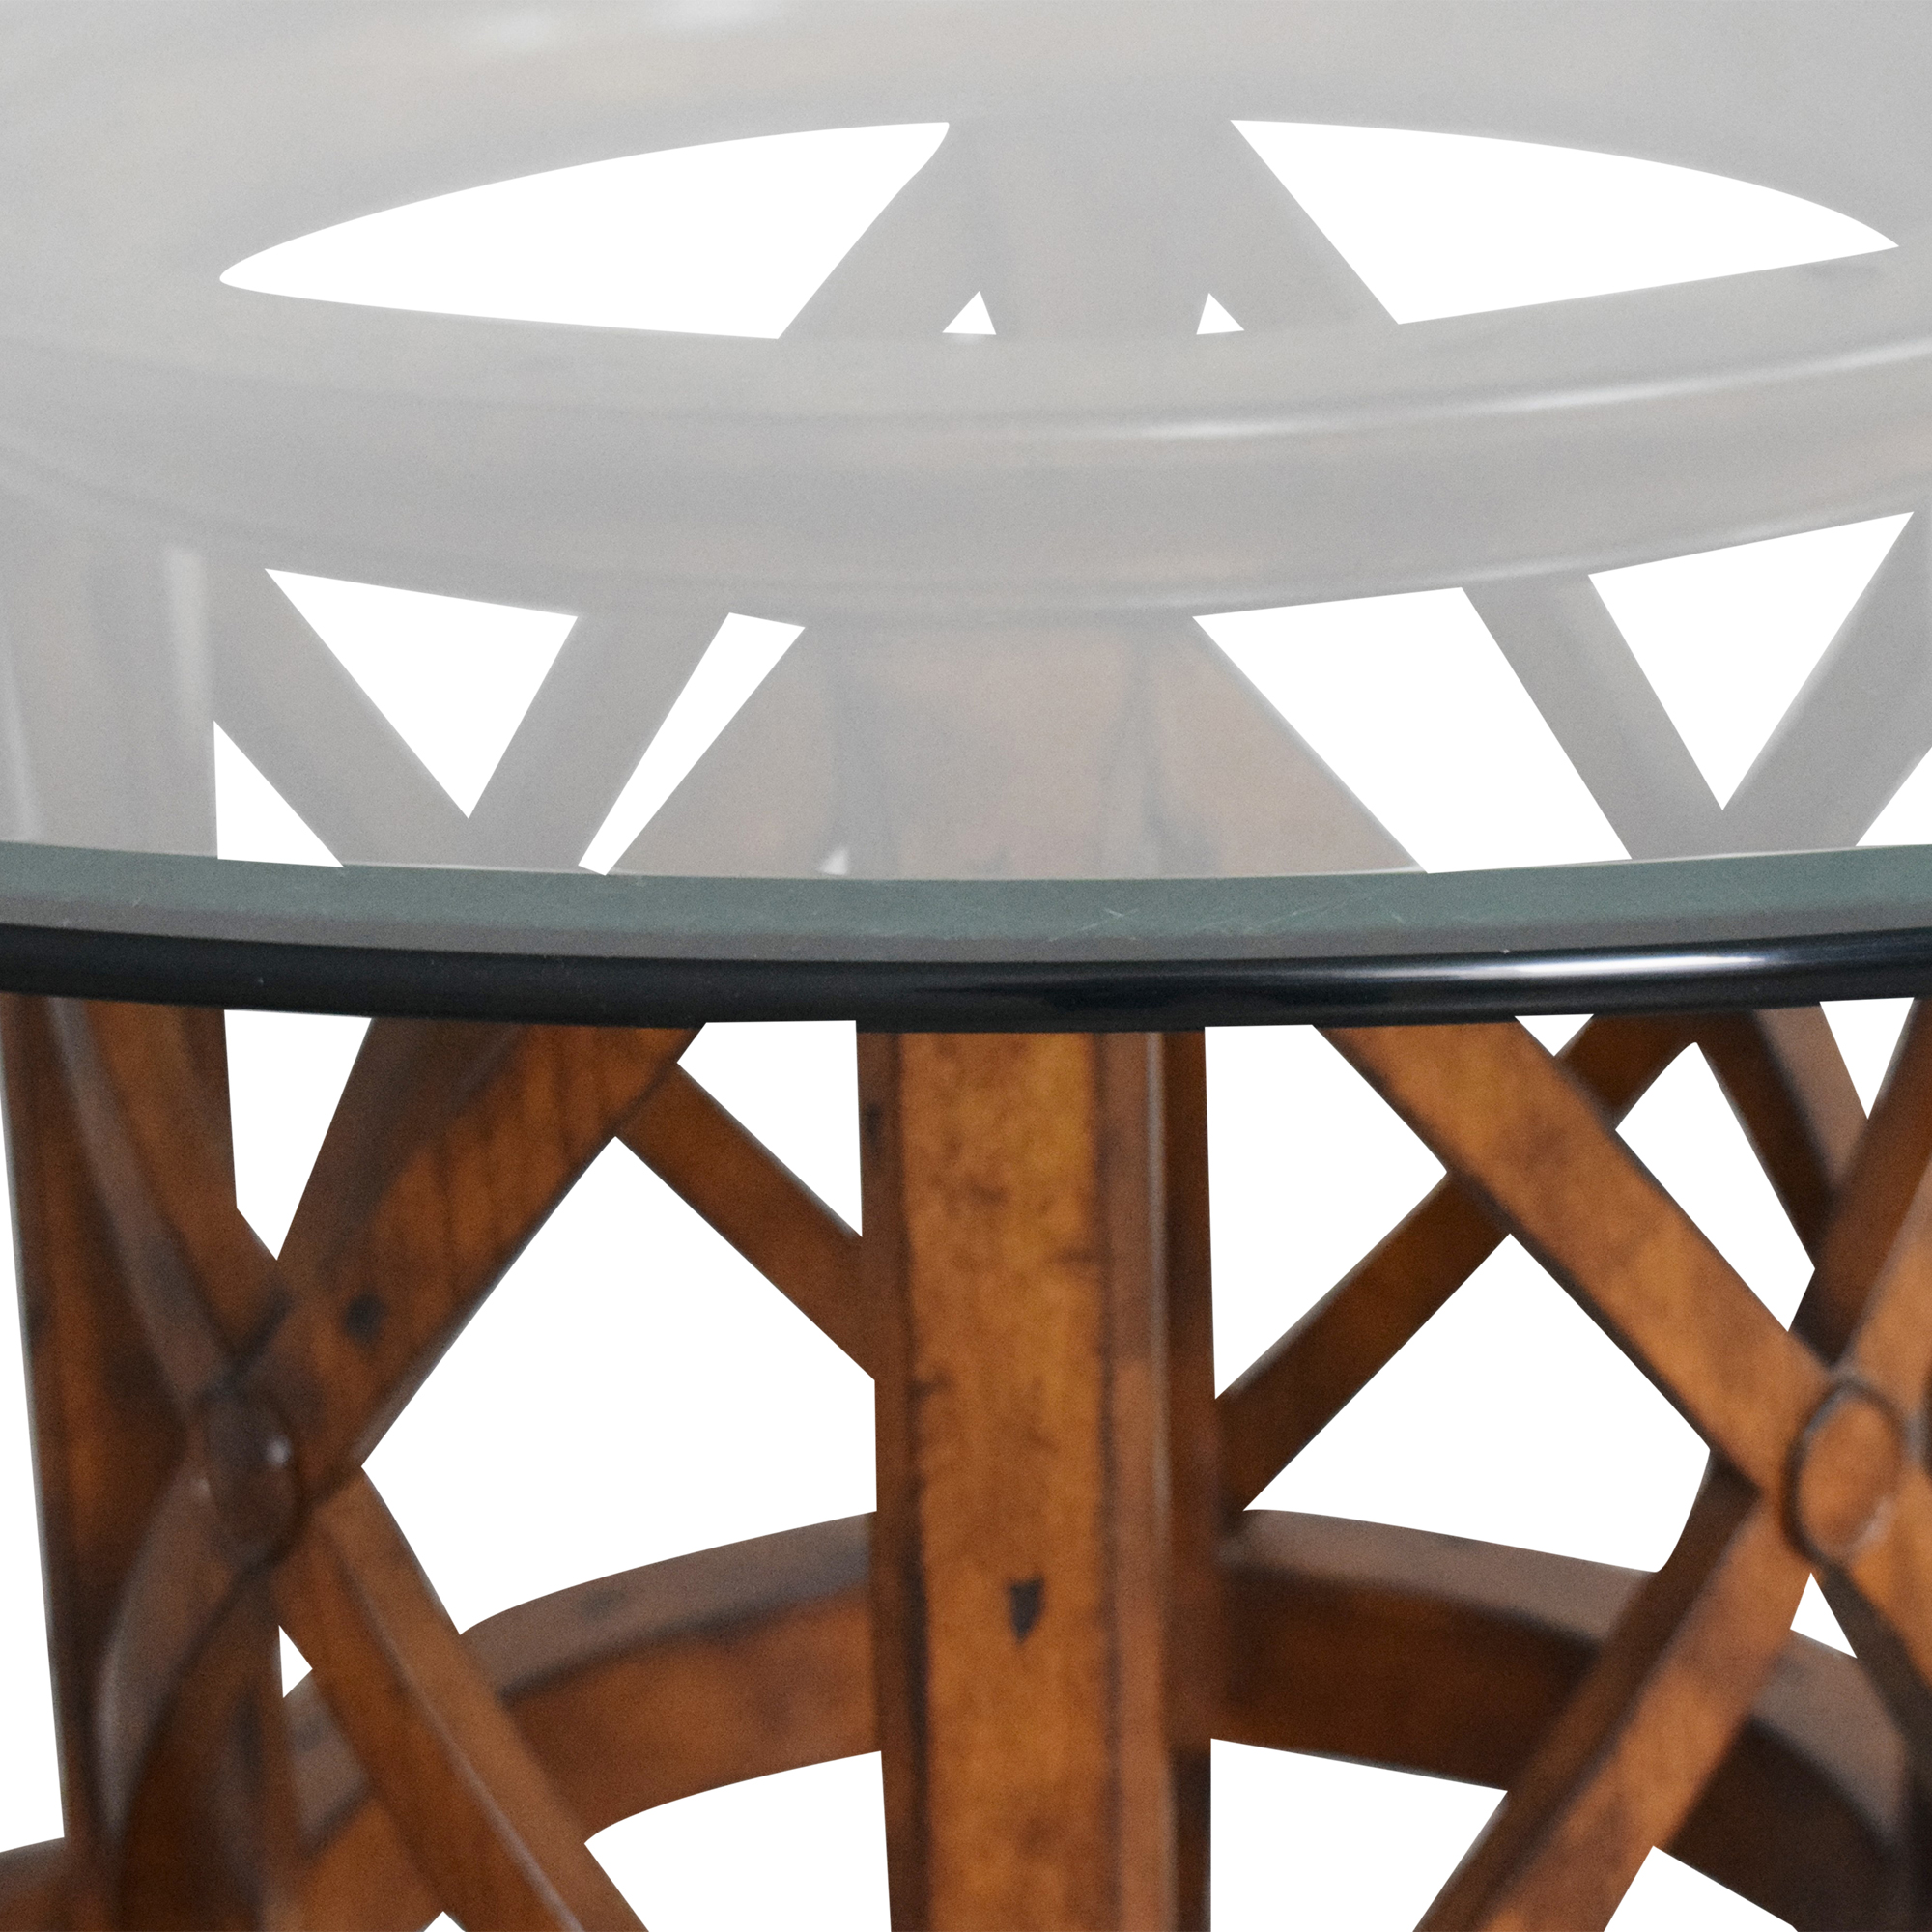 Thomasville Thomasville Round Dining Table ct